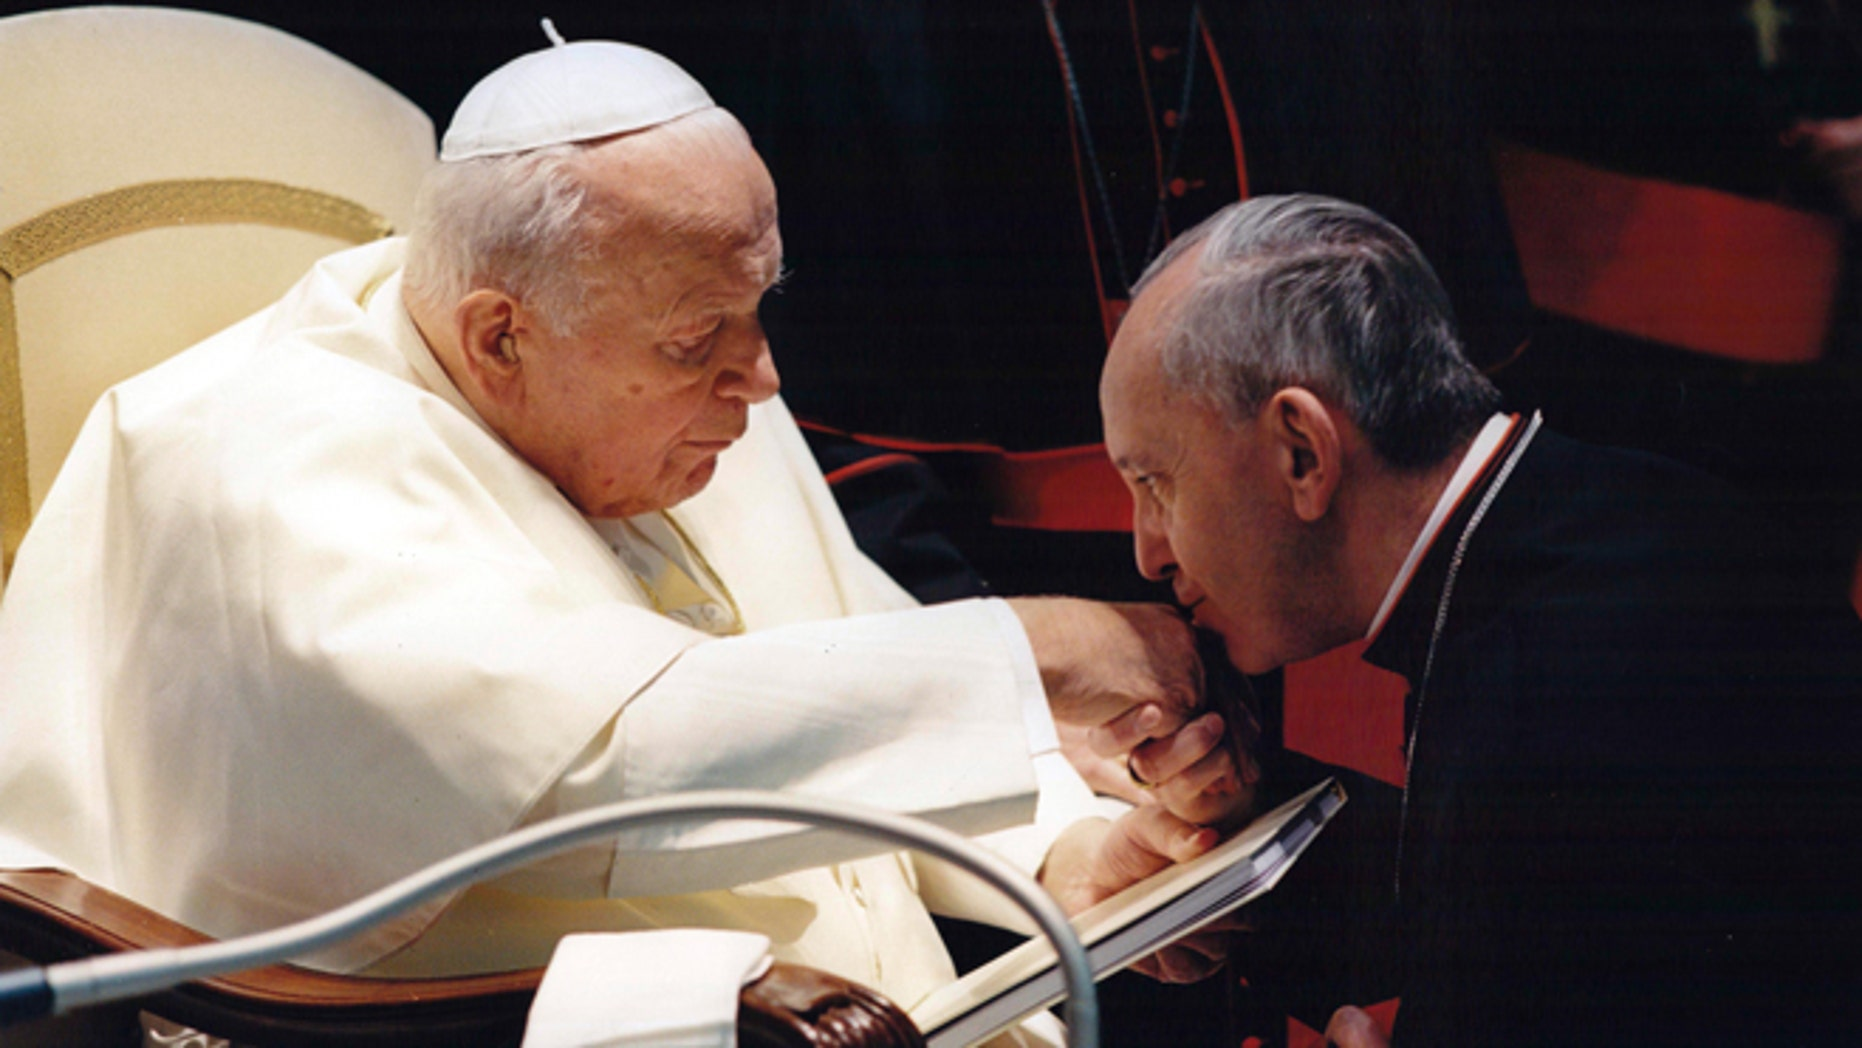 In this undated file photo, Archbishop of Buenos Aires Jorge Mario Bergoglio, now Pope Francis, kisses the hand of Pope John Paul II during a ceremony at the Vatican.